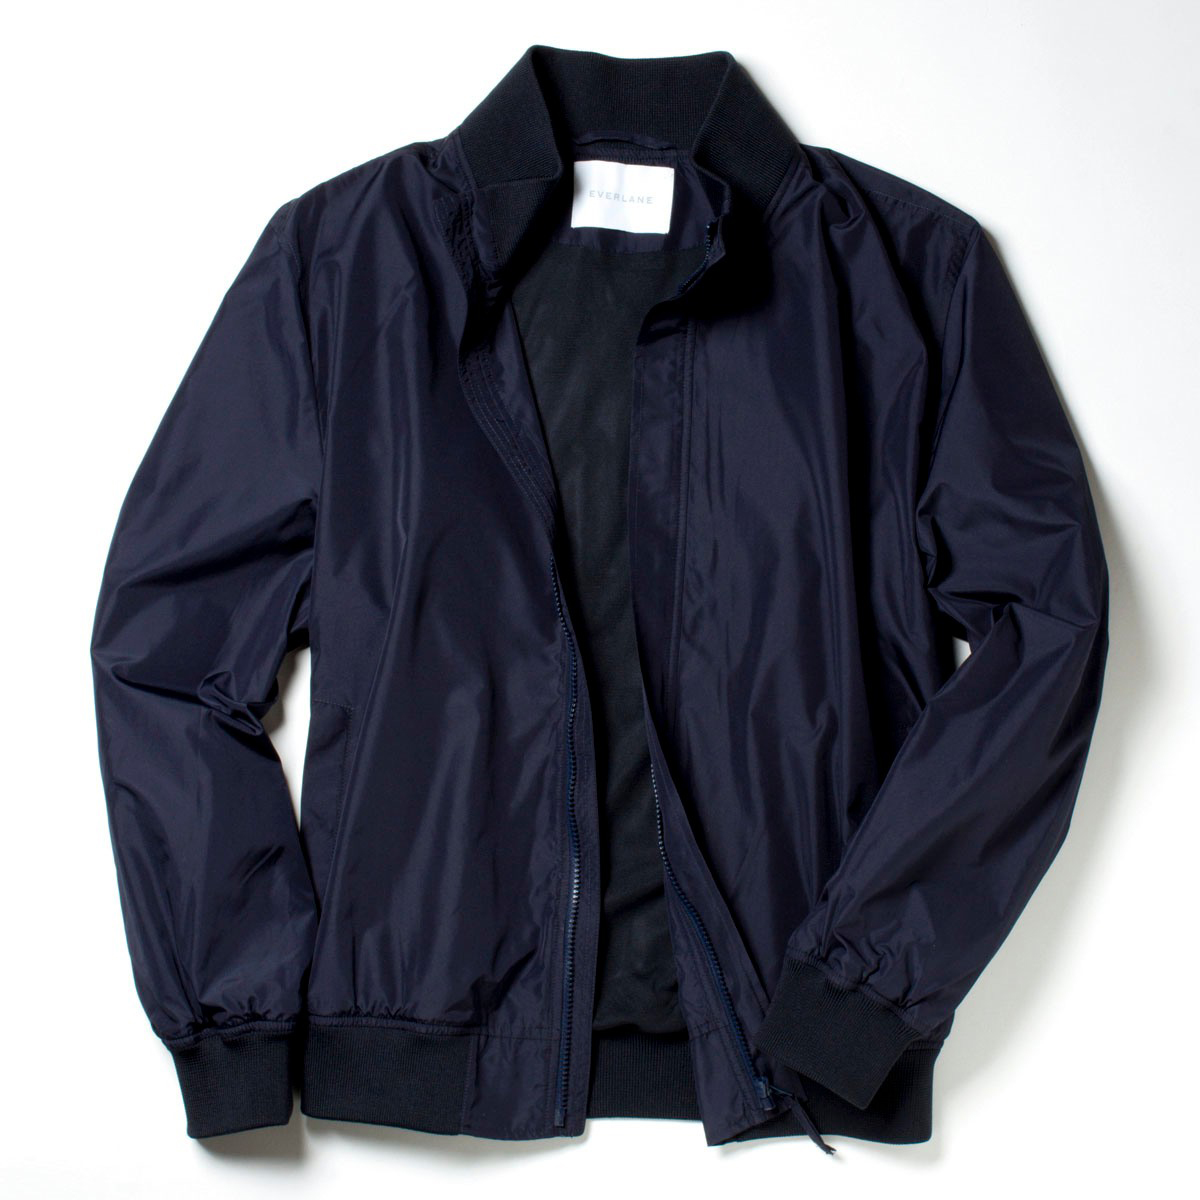 Everlane Lightweight Bomber Jacket